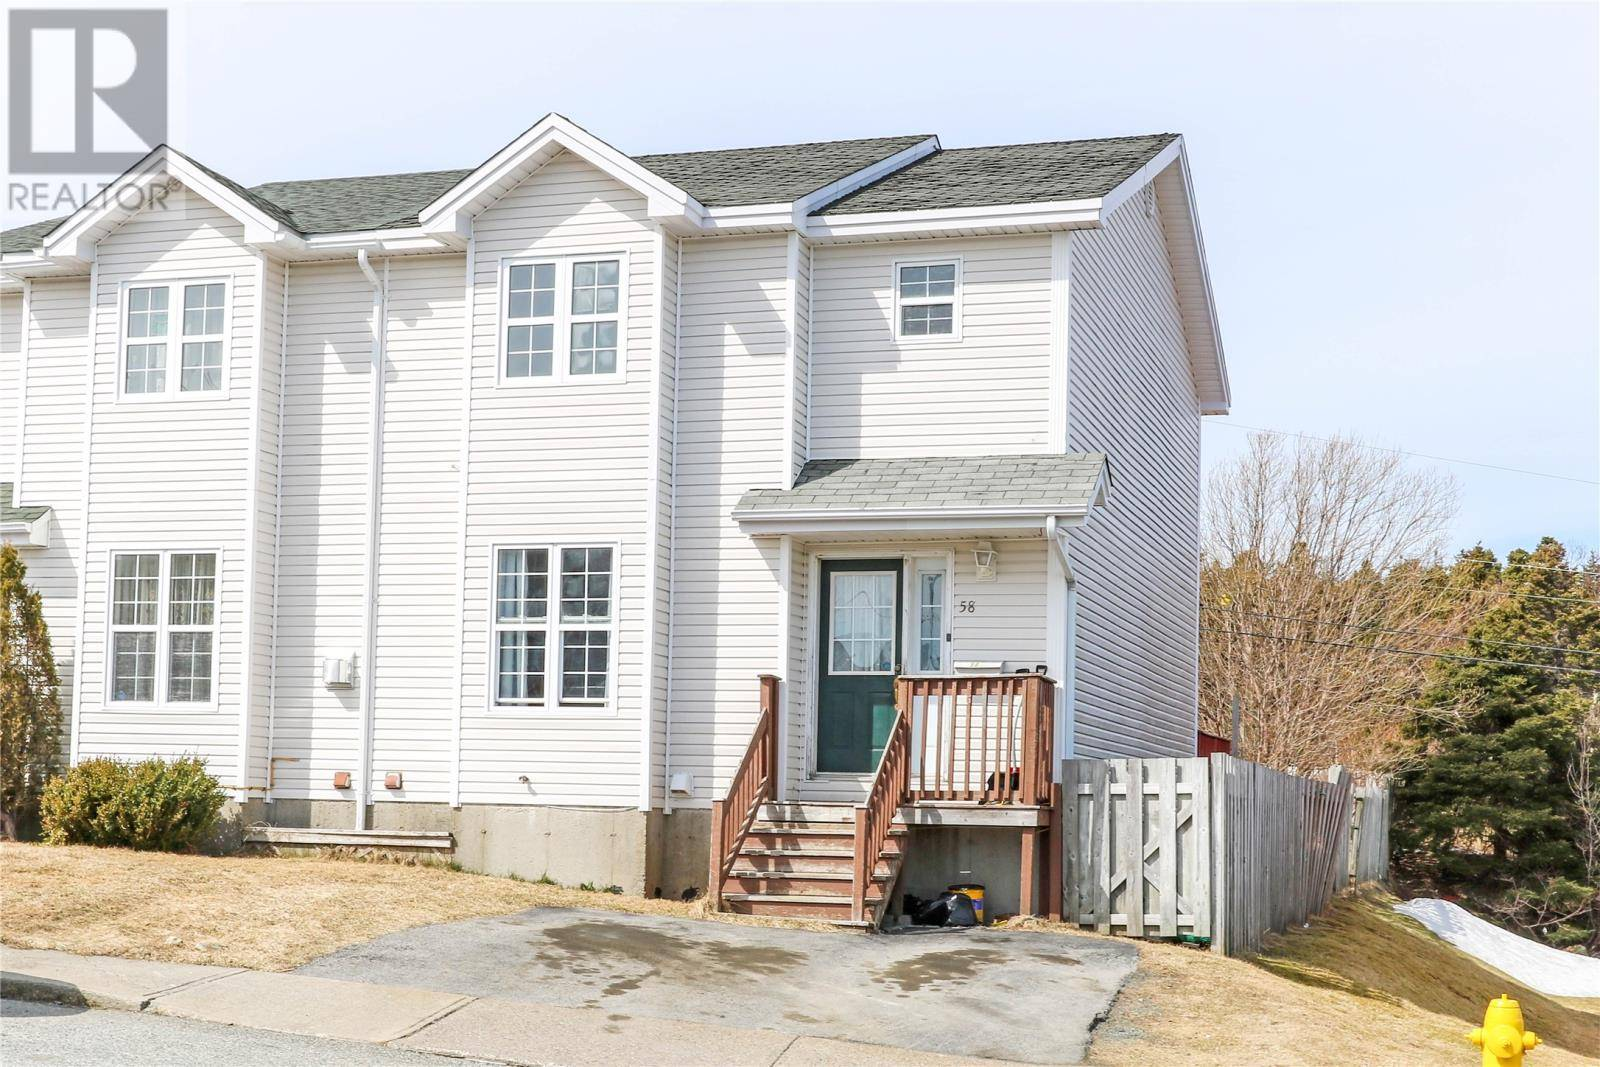 House for sale at 58 Beothuck St St. John's Newfoundland - MLS: 1211473